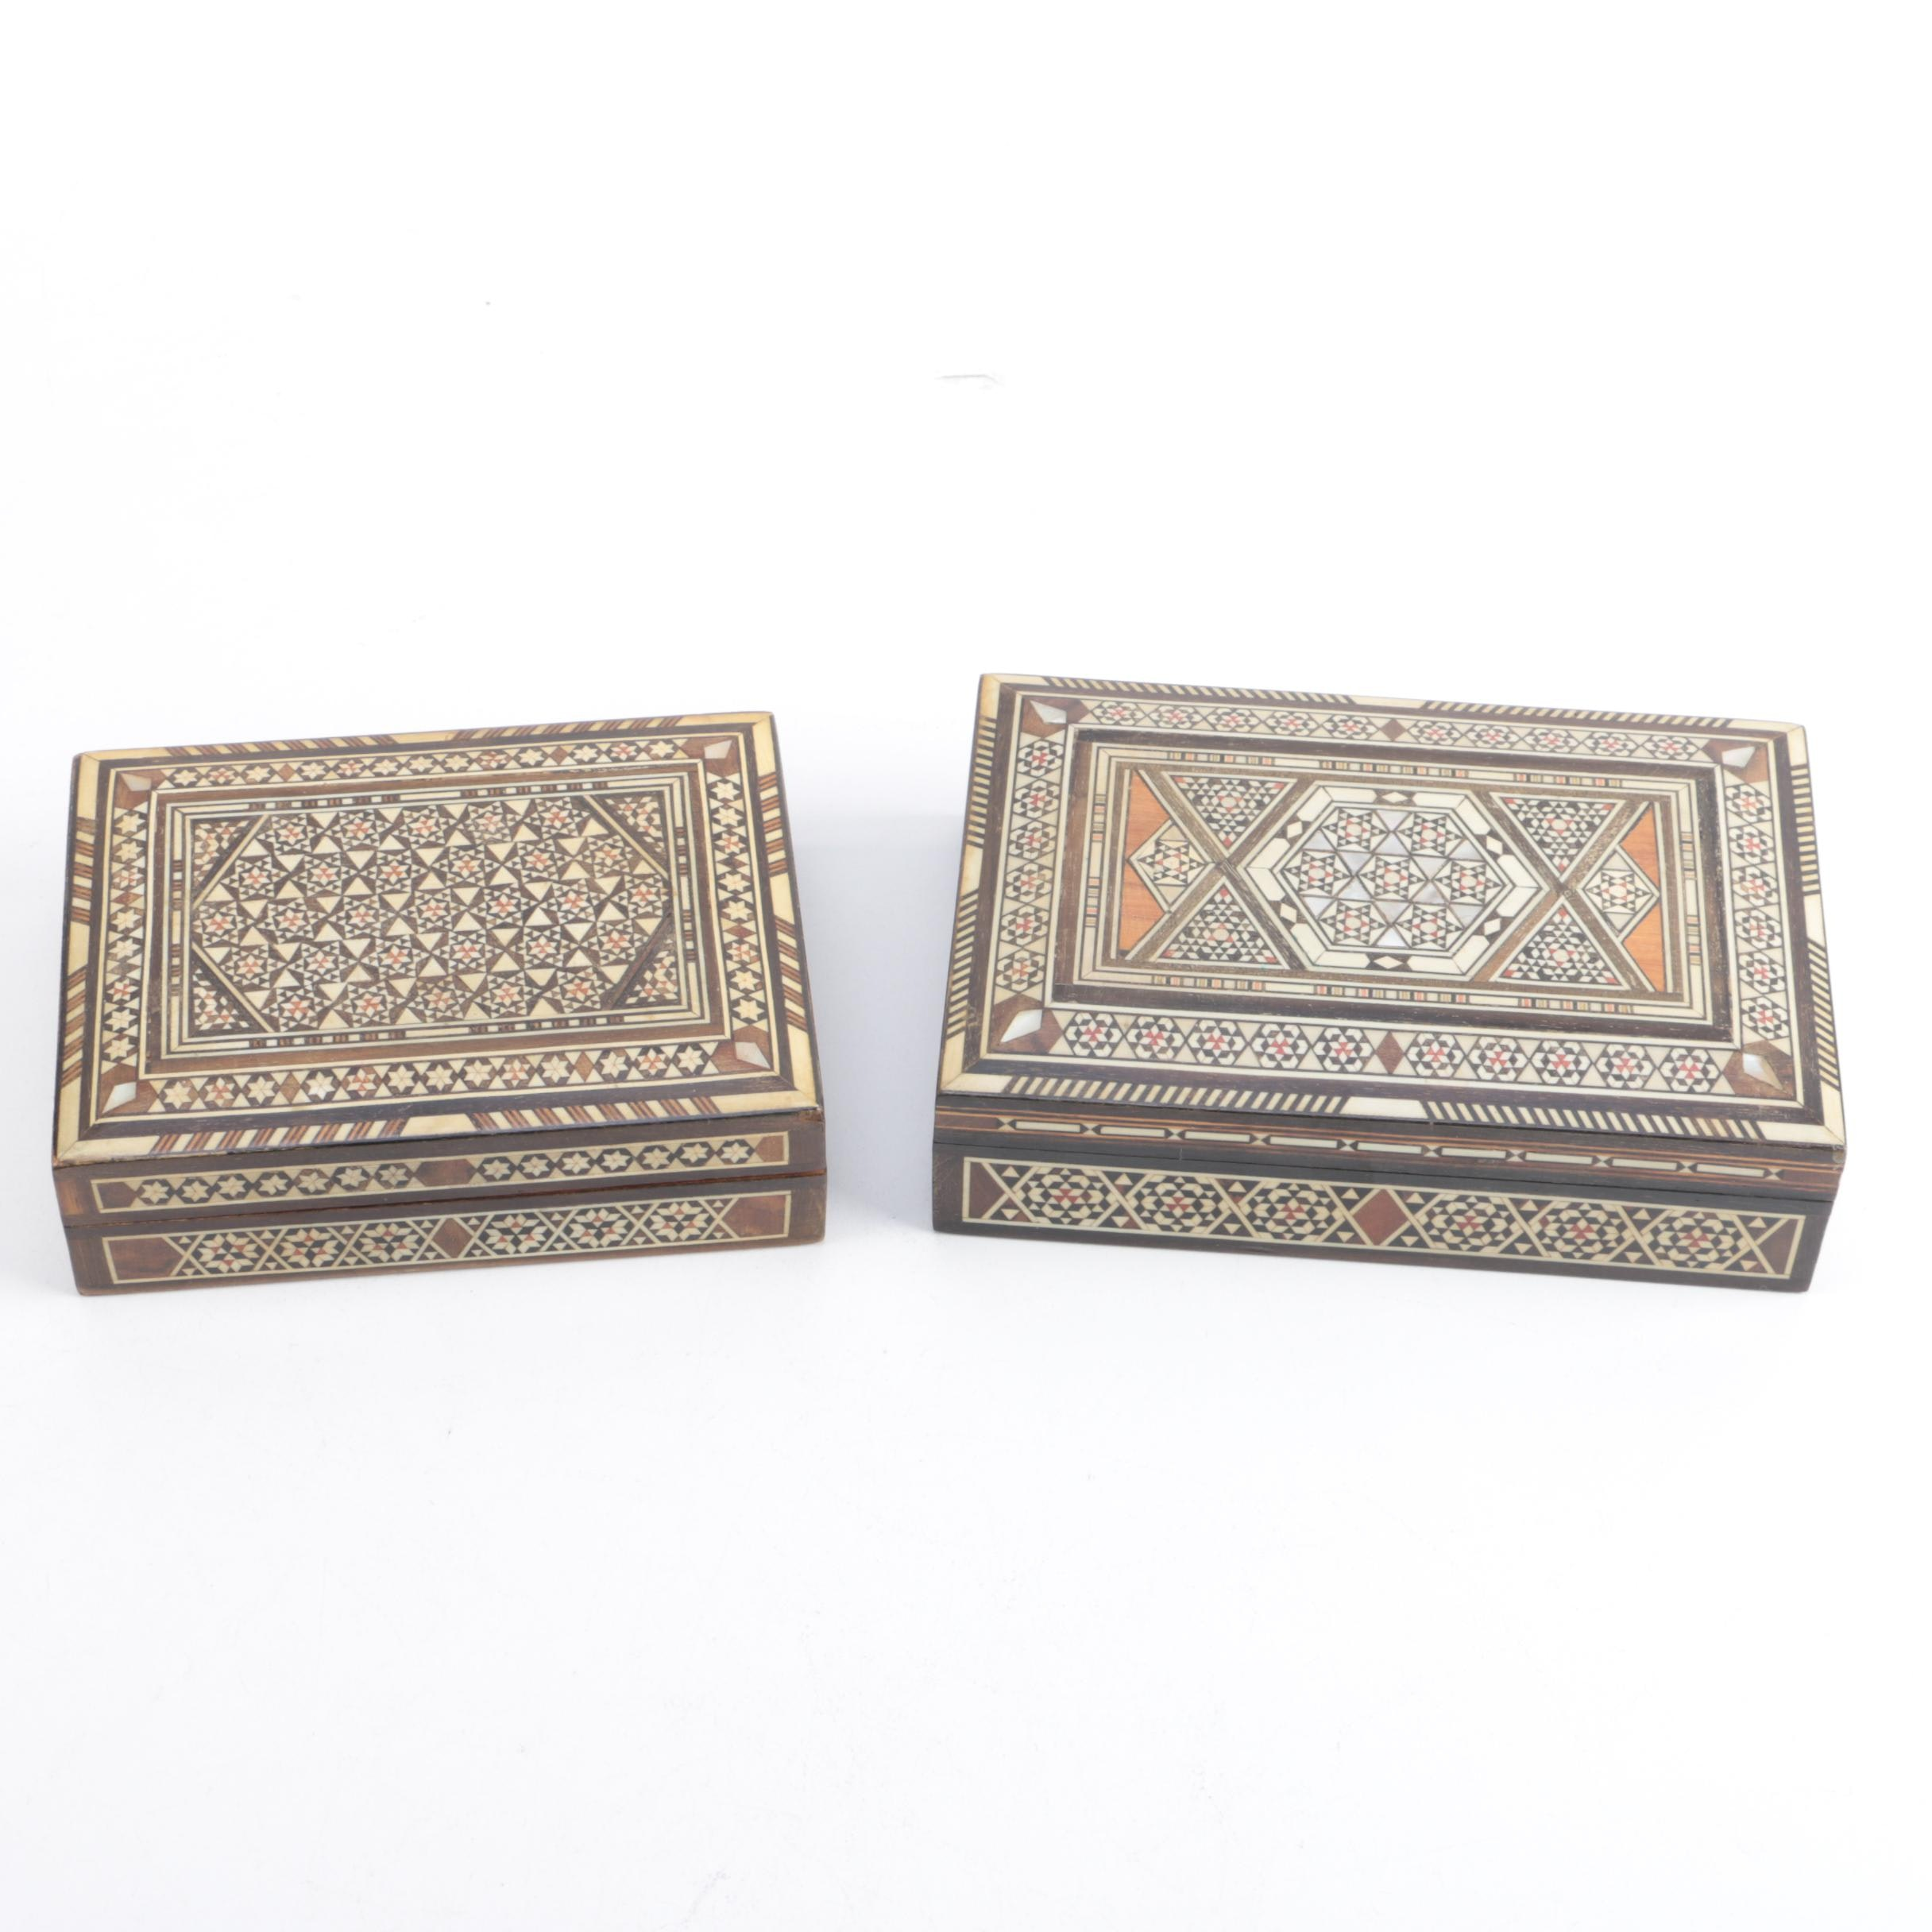 Two Inlaid Wooden Boxes